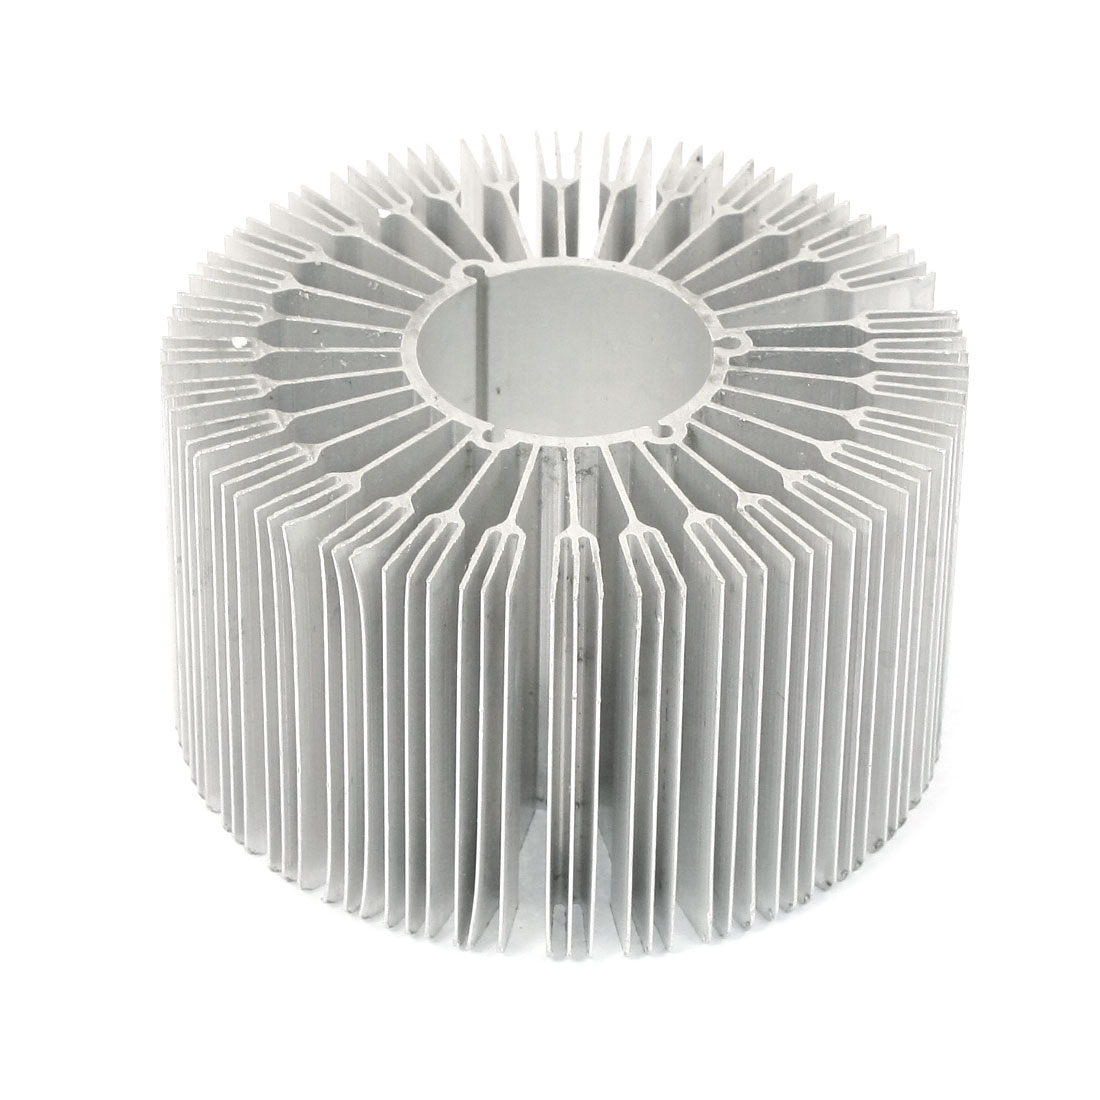 88mm x 50mm Cylinder 15W High Power LED Heatsink Aluminium Cooling Fin